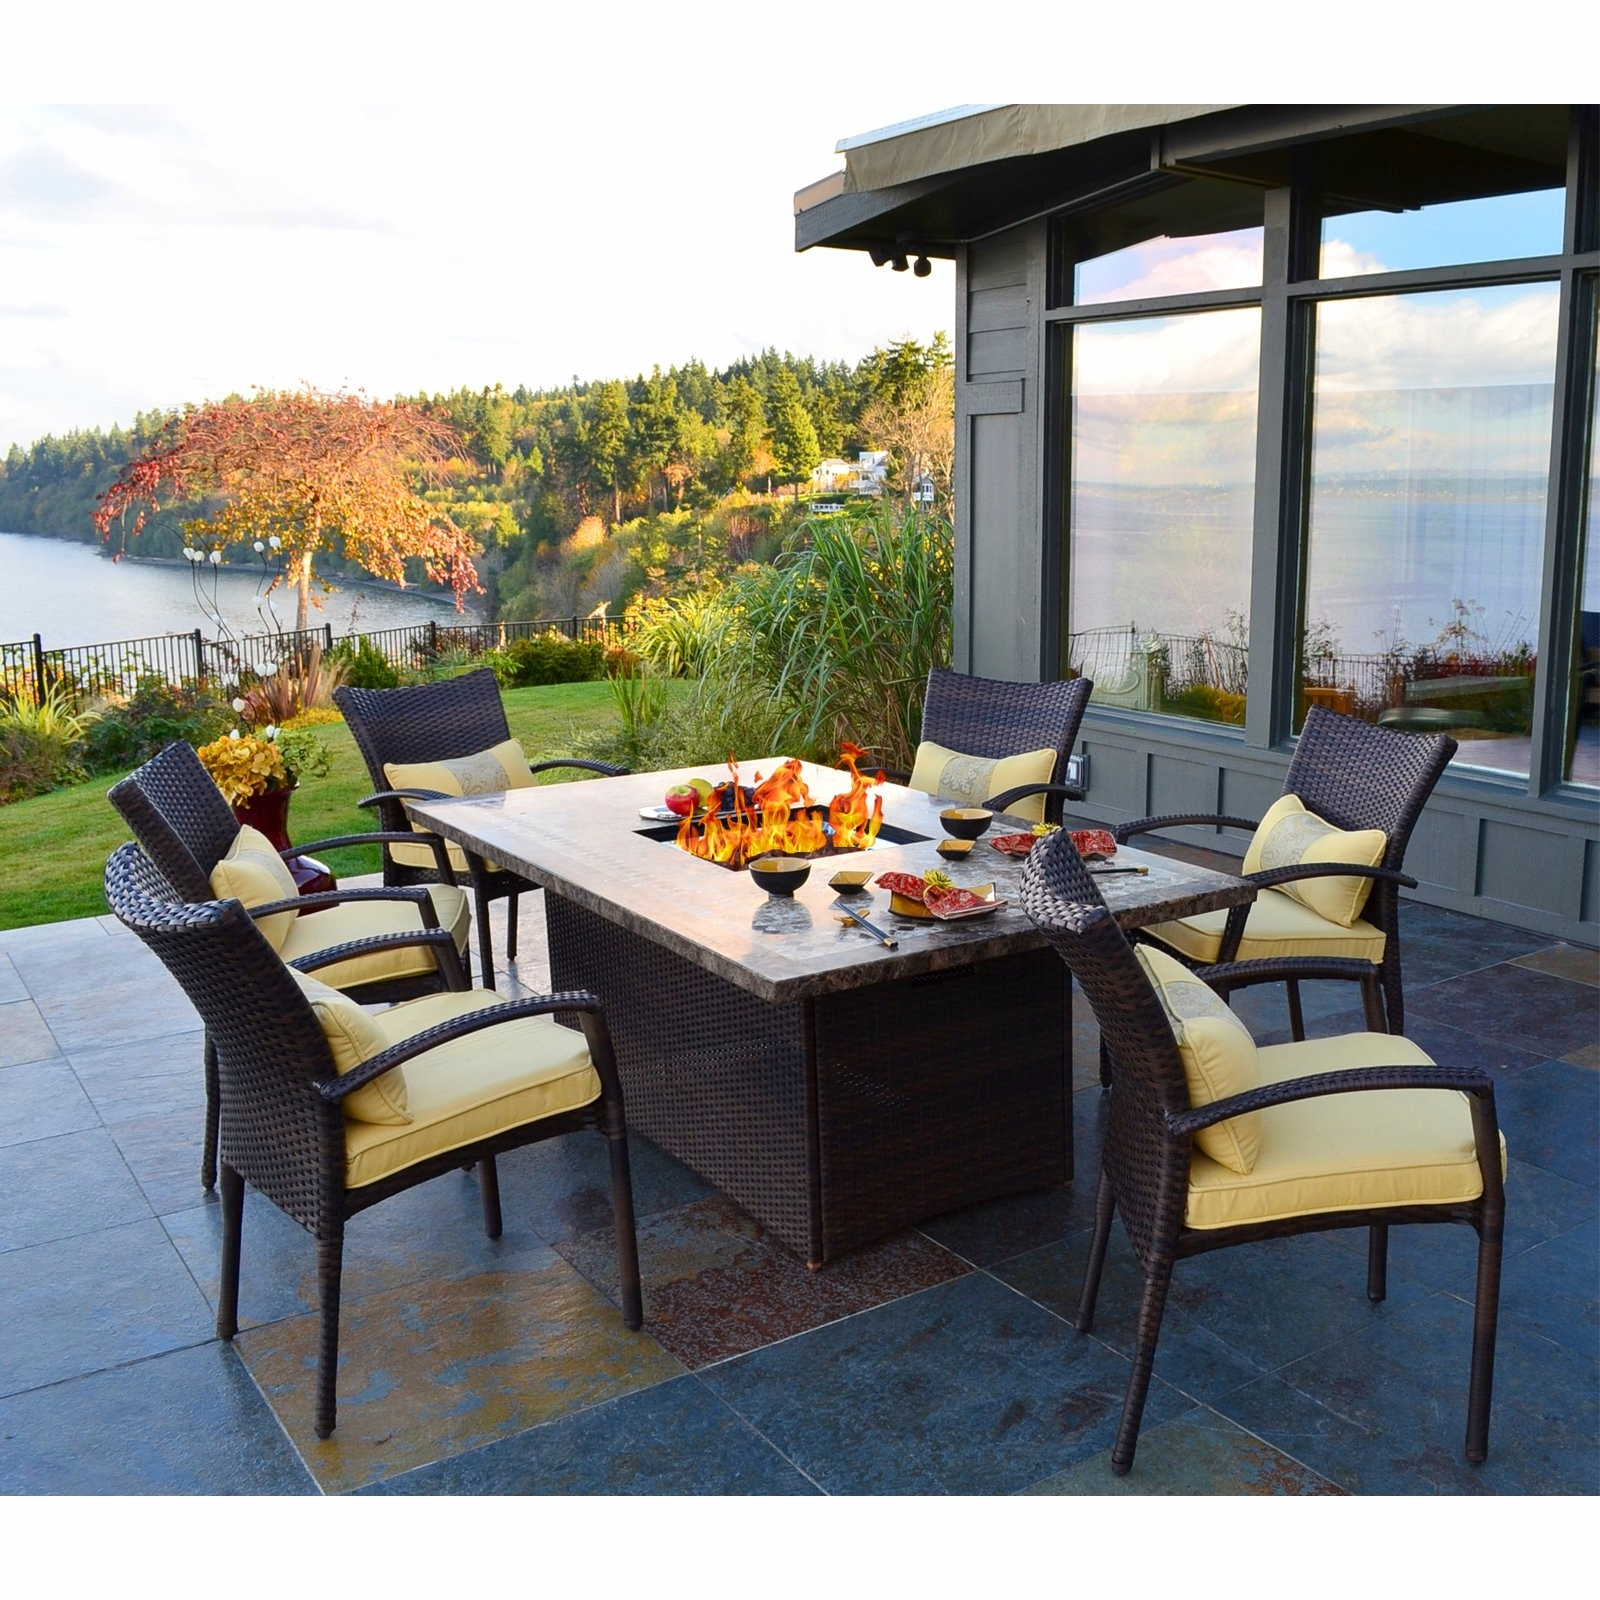 Patio Conversation Sets With Fire Table Throughout Well Known Patio Dining Table With Fire Pit Lovely Conversation Sets Fire Pit (View 10 of 20)